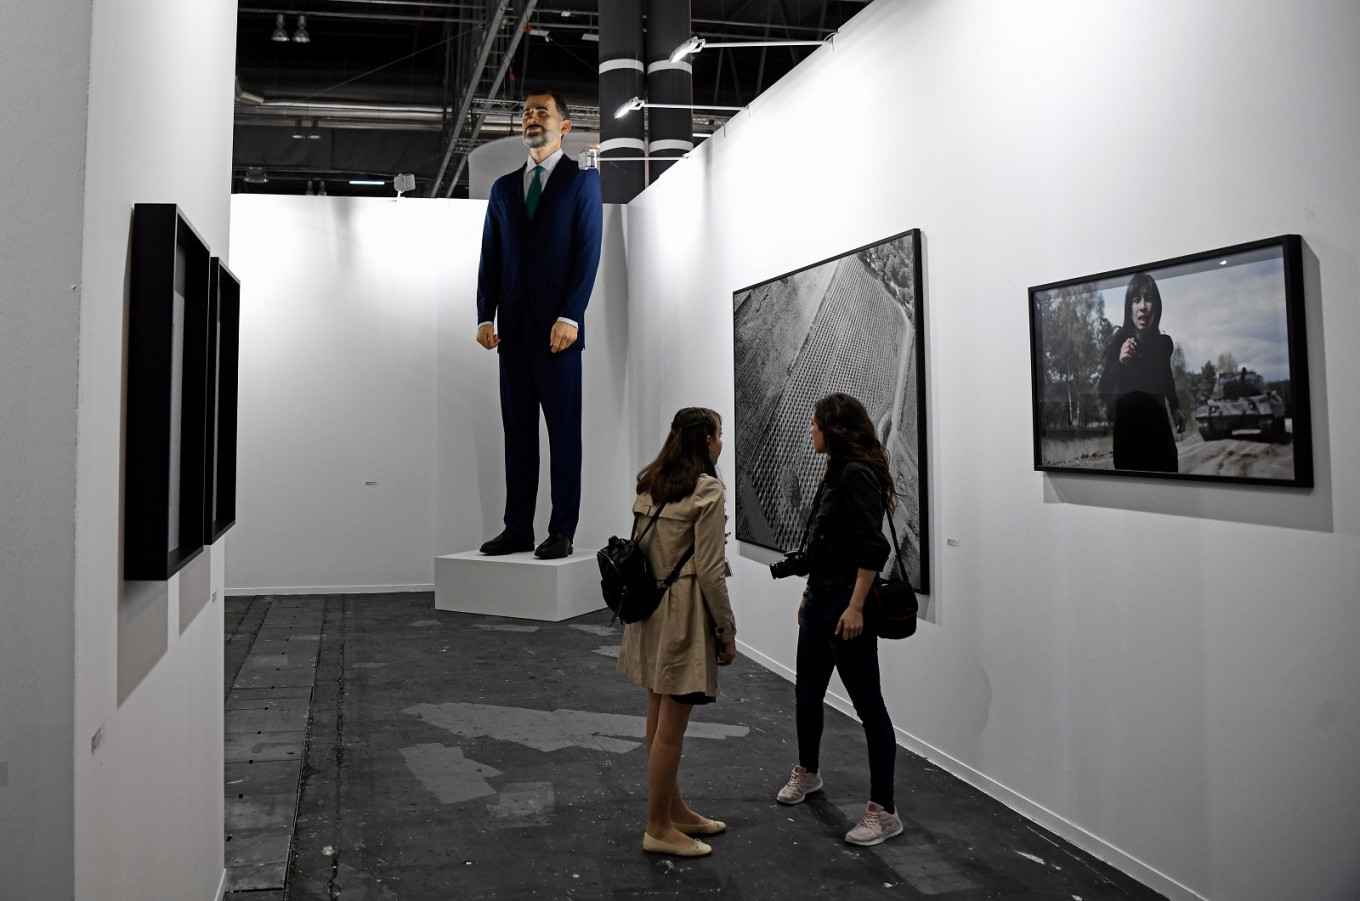 Spanish king's inflammable statue sparks art fair row